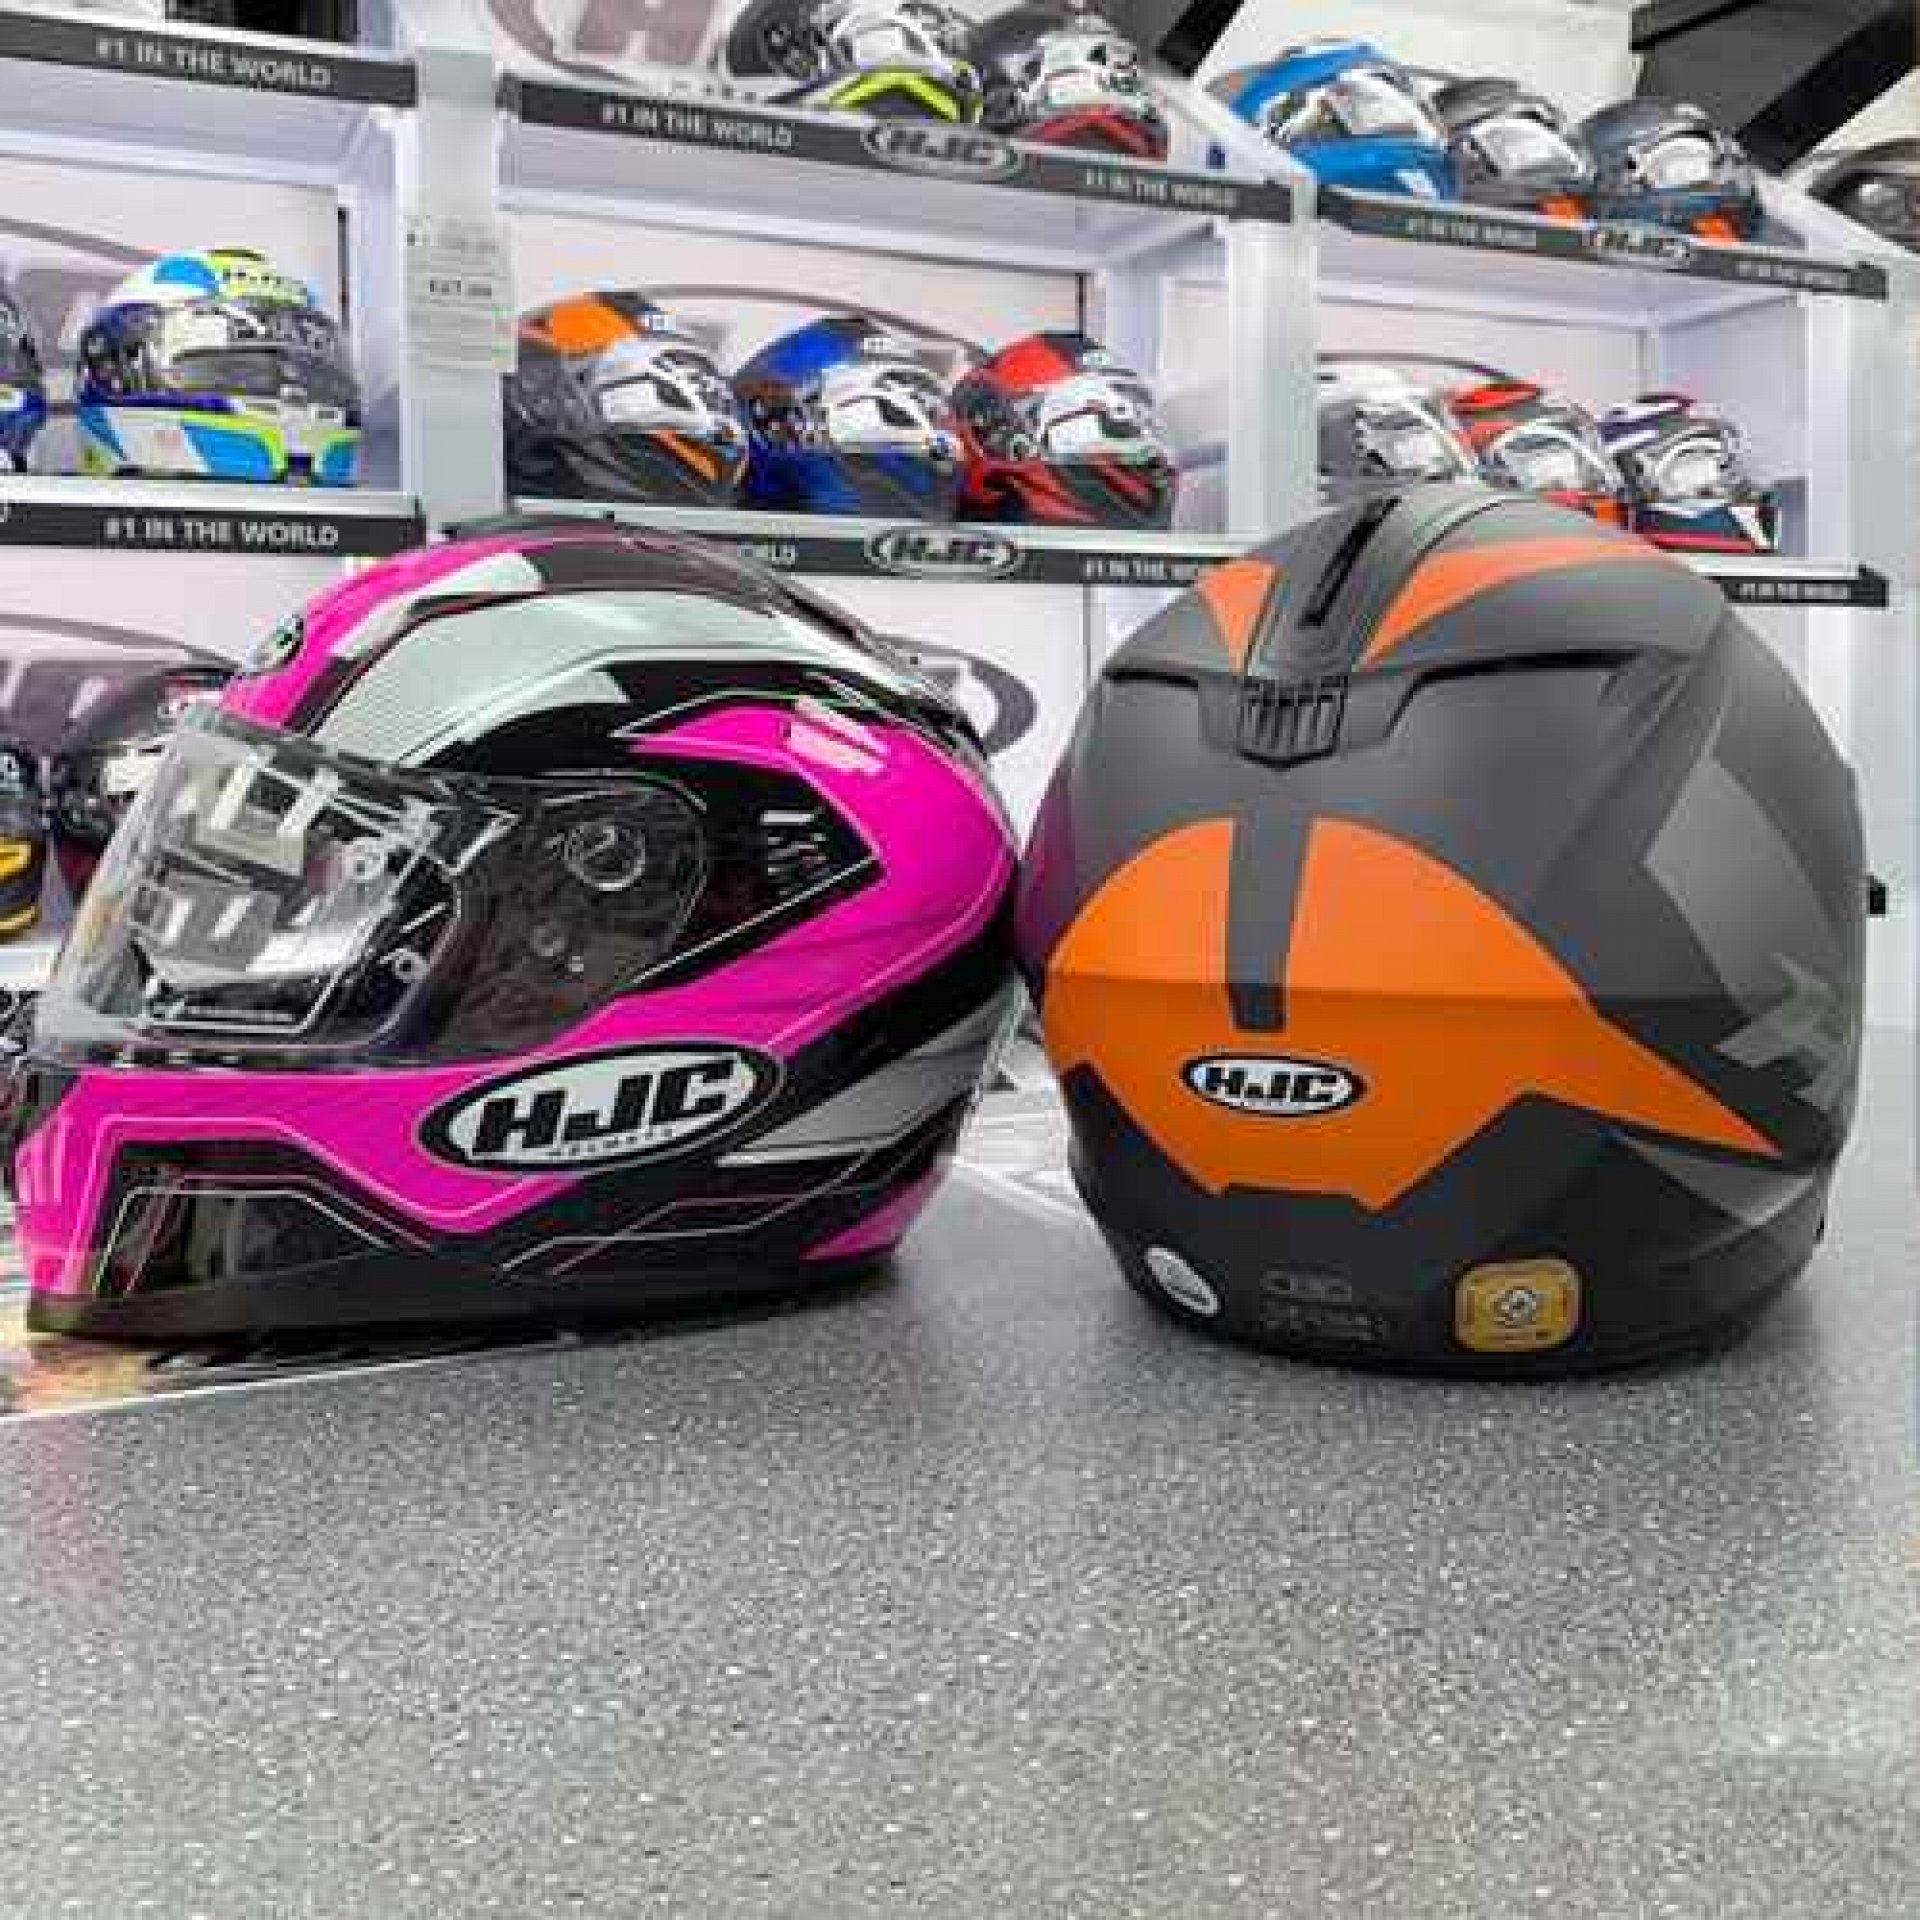 Motorcycle Helmet Dealer